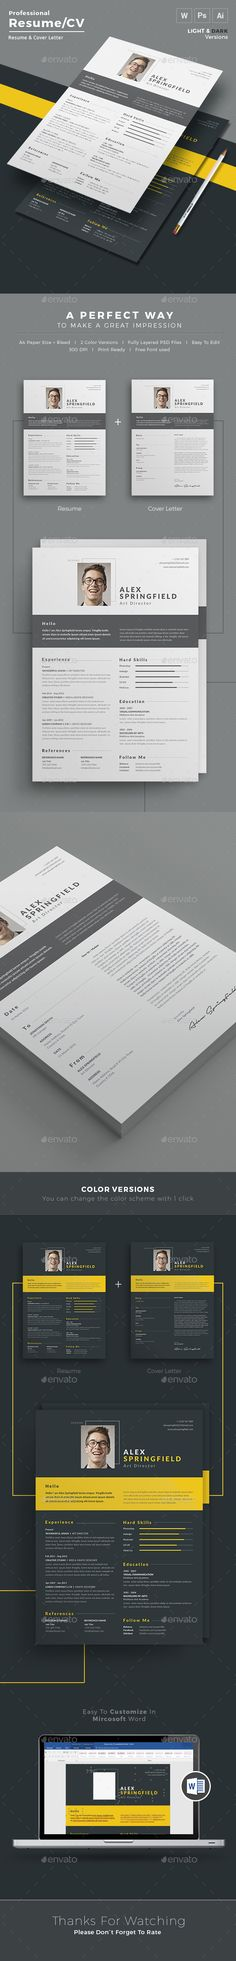 Resume - Resume Word / CV Template with super modern and professional look. Elegant page designs are easy to use and customize, so you can quickly tailor-make your resume for any opportunity and help you to get your job. http://graphicriver.net/item/resume-/15597863?ref=themedevisers